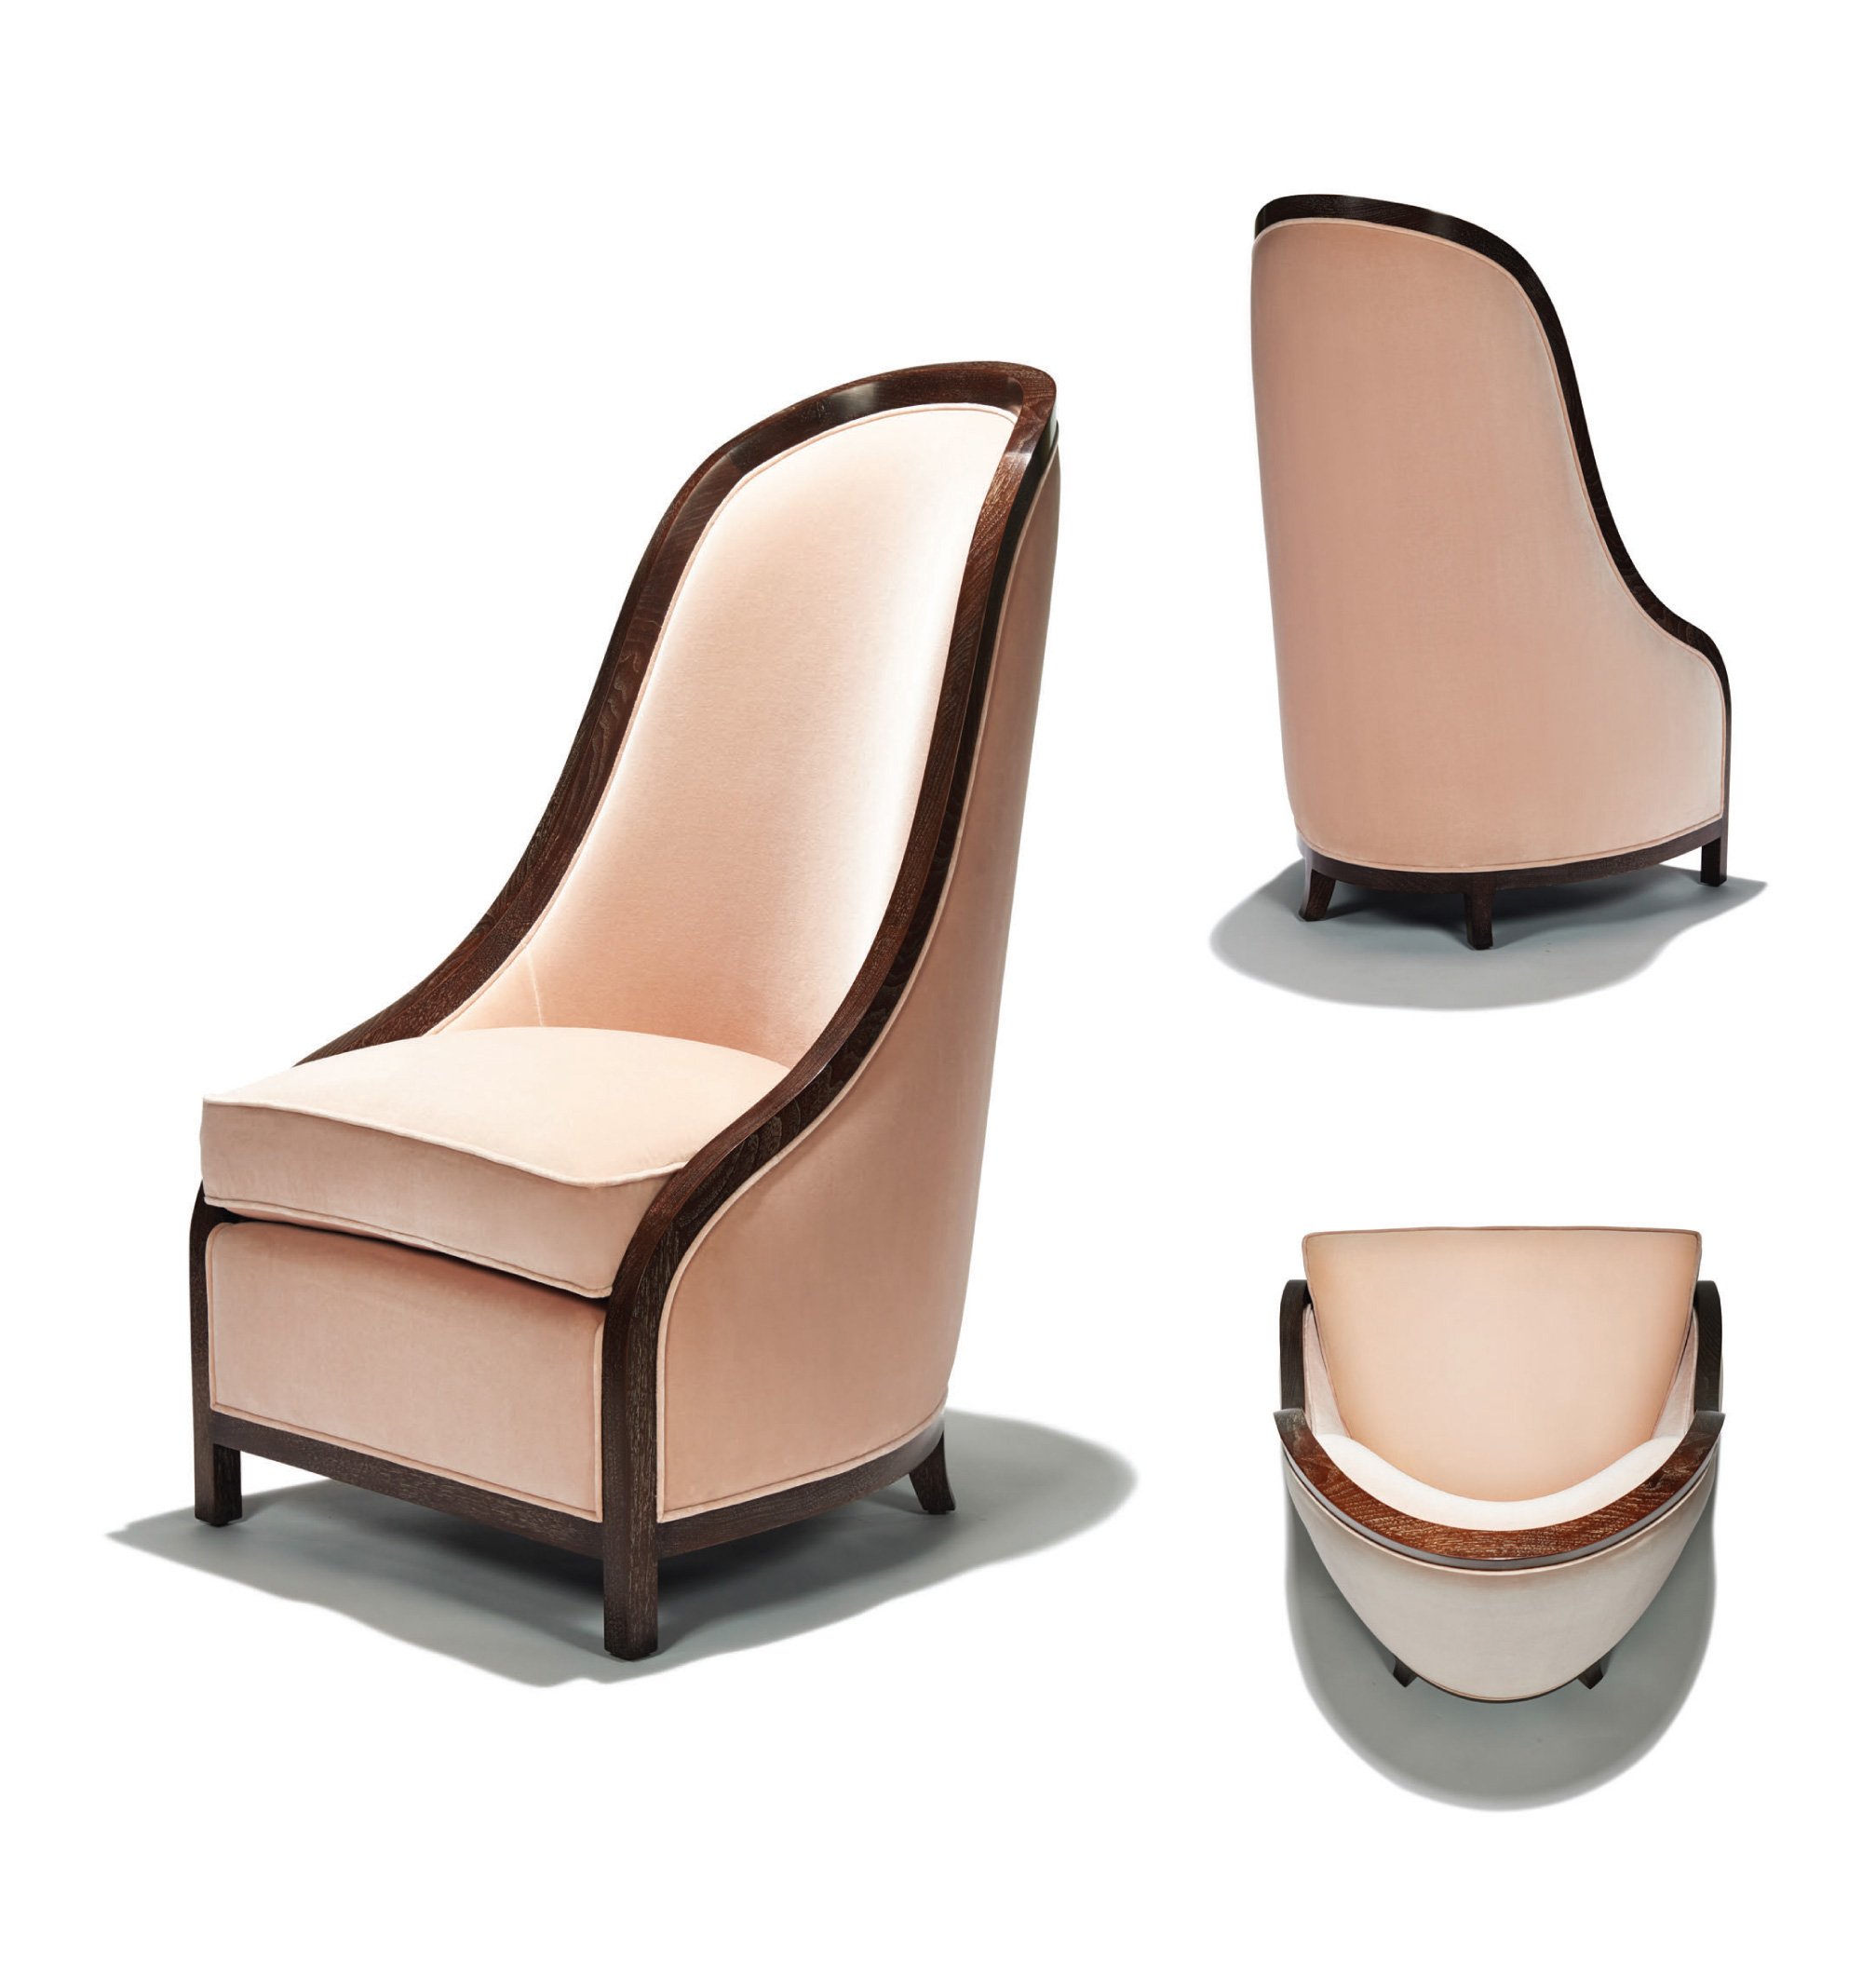 CAMEO HIGH BACK CHAIR